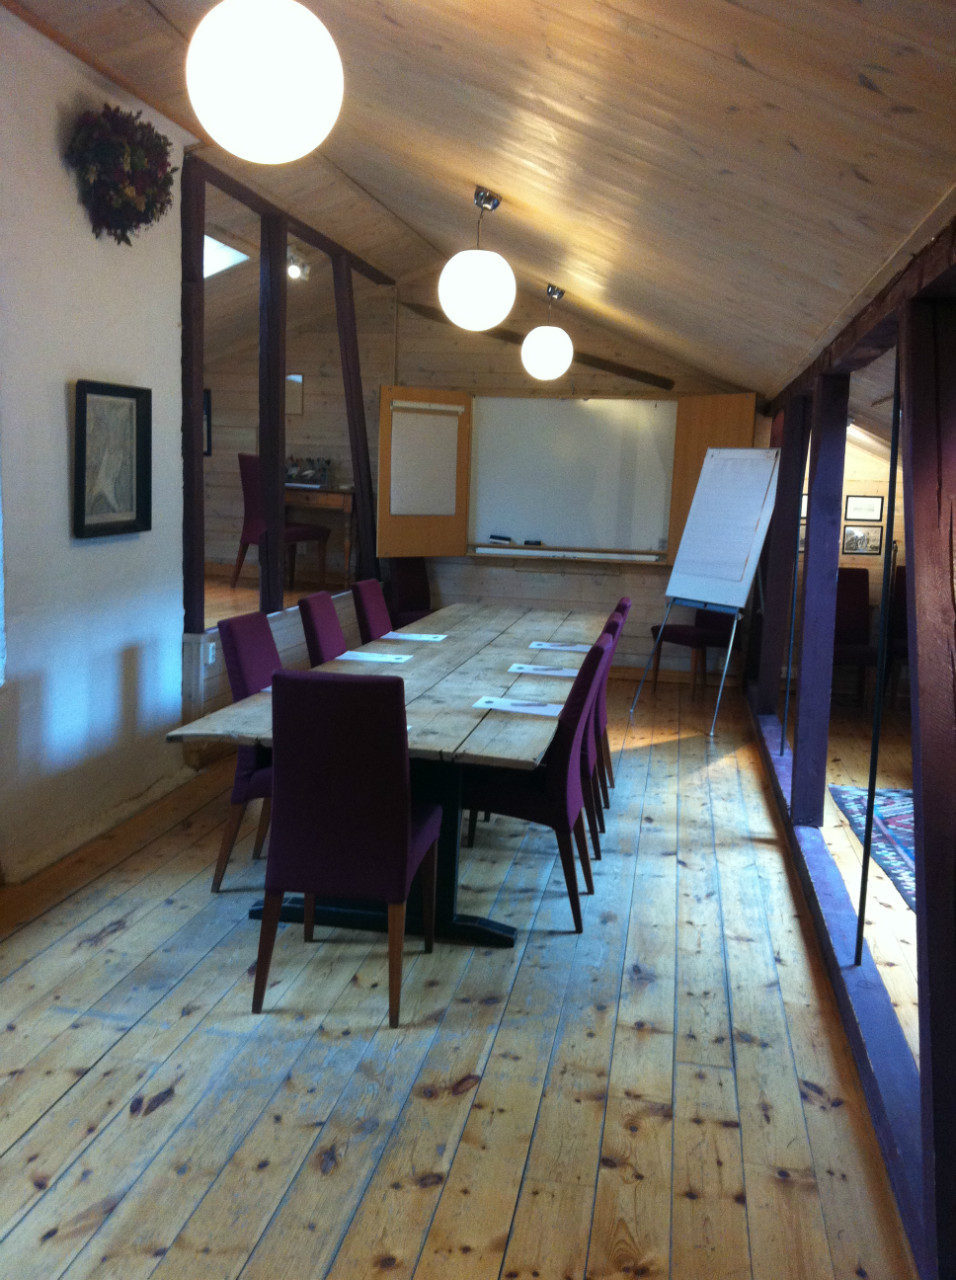 Loft-Meeting-Room-Museum-Projector-Old-Kleivstua-1780-VGA (3).JPG